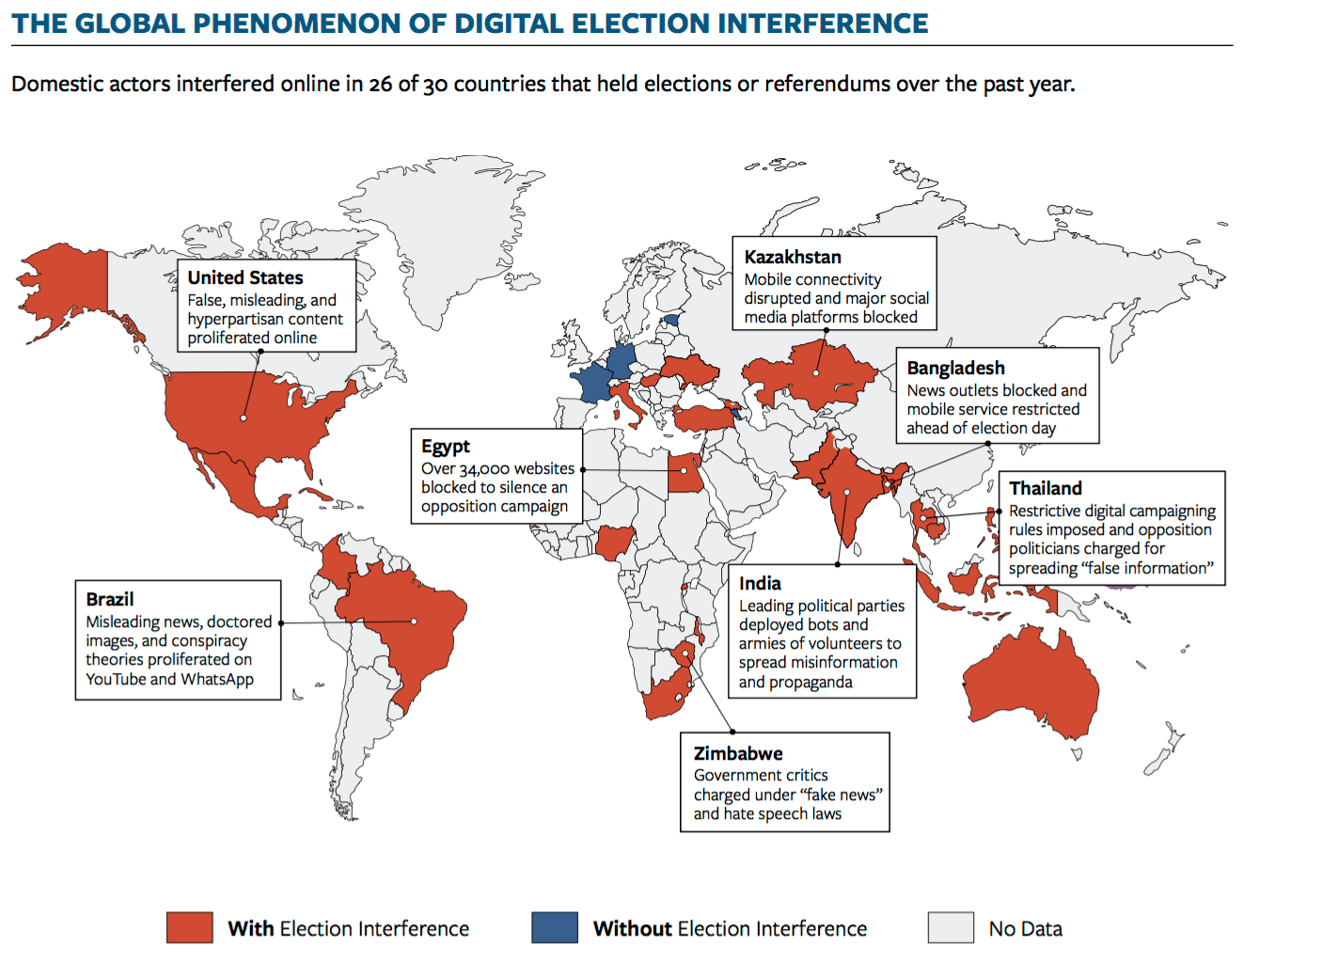 The vast majority of countries undergoing elections over the past 12 months saw some form of digital election interference